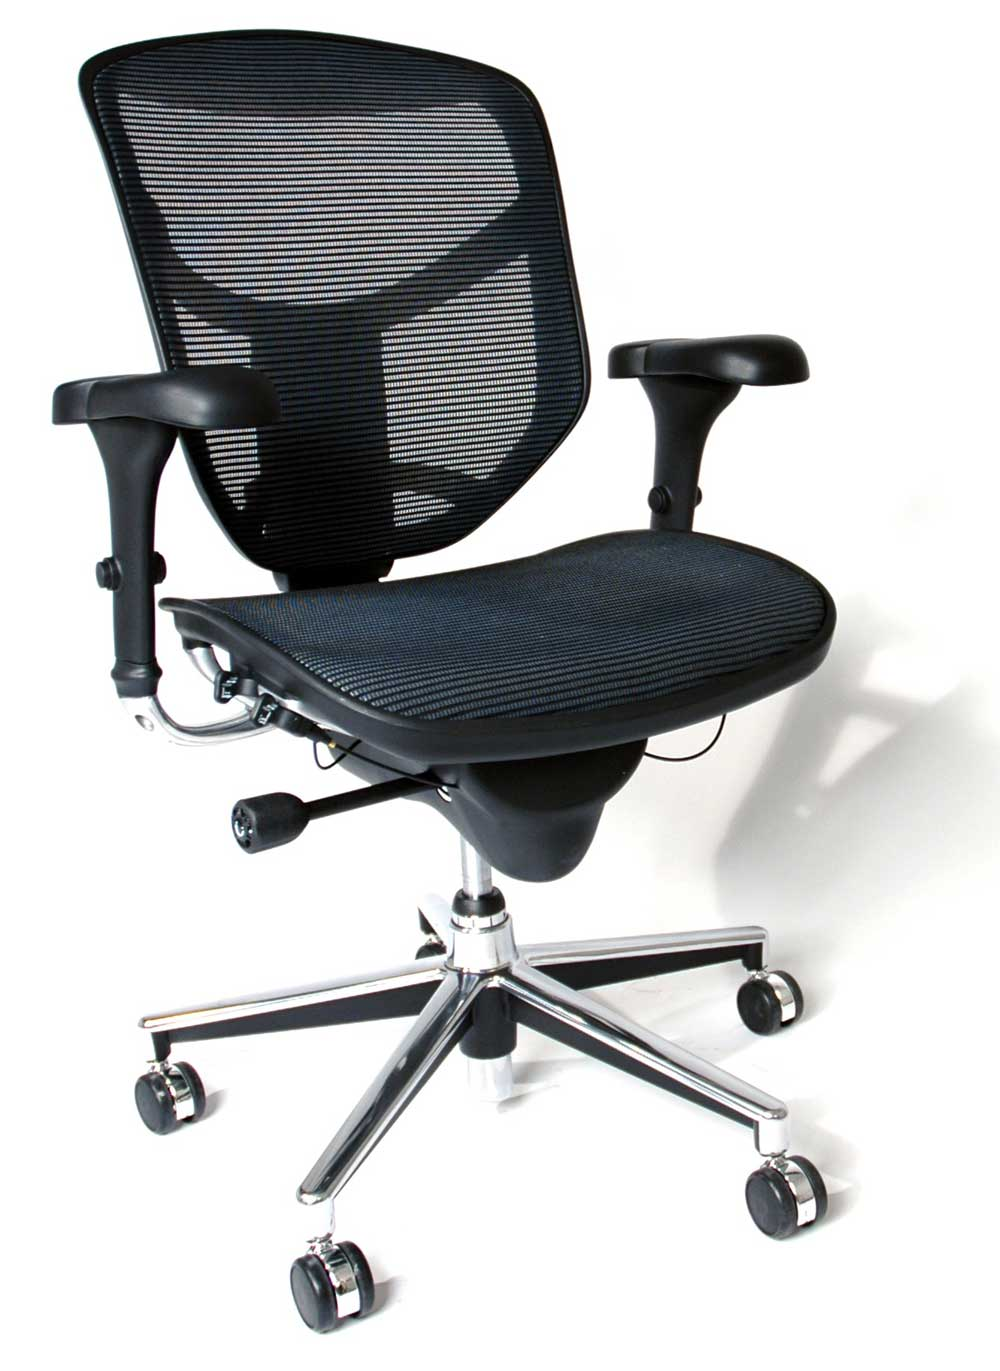 Sealy Posturepedic Chair